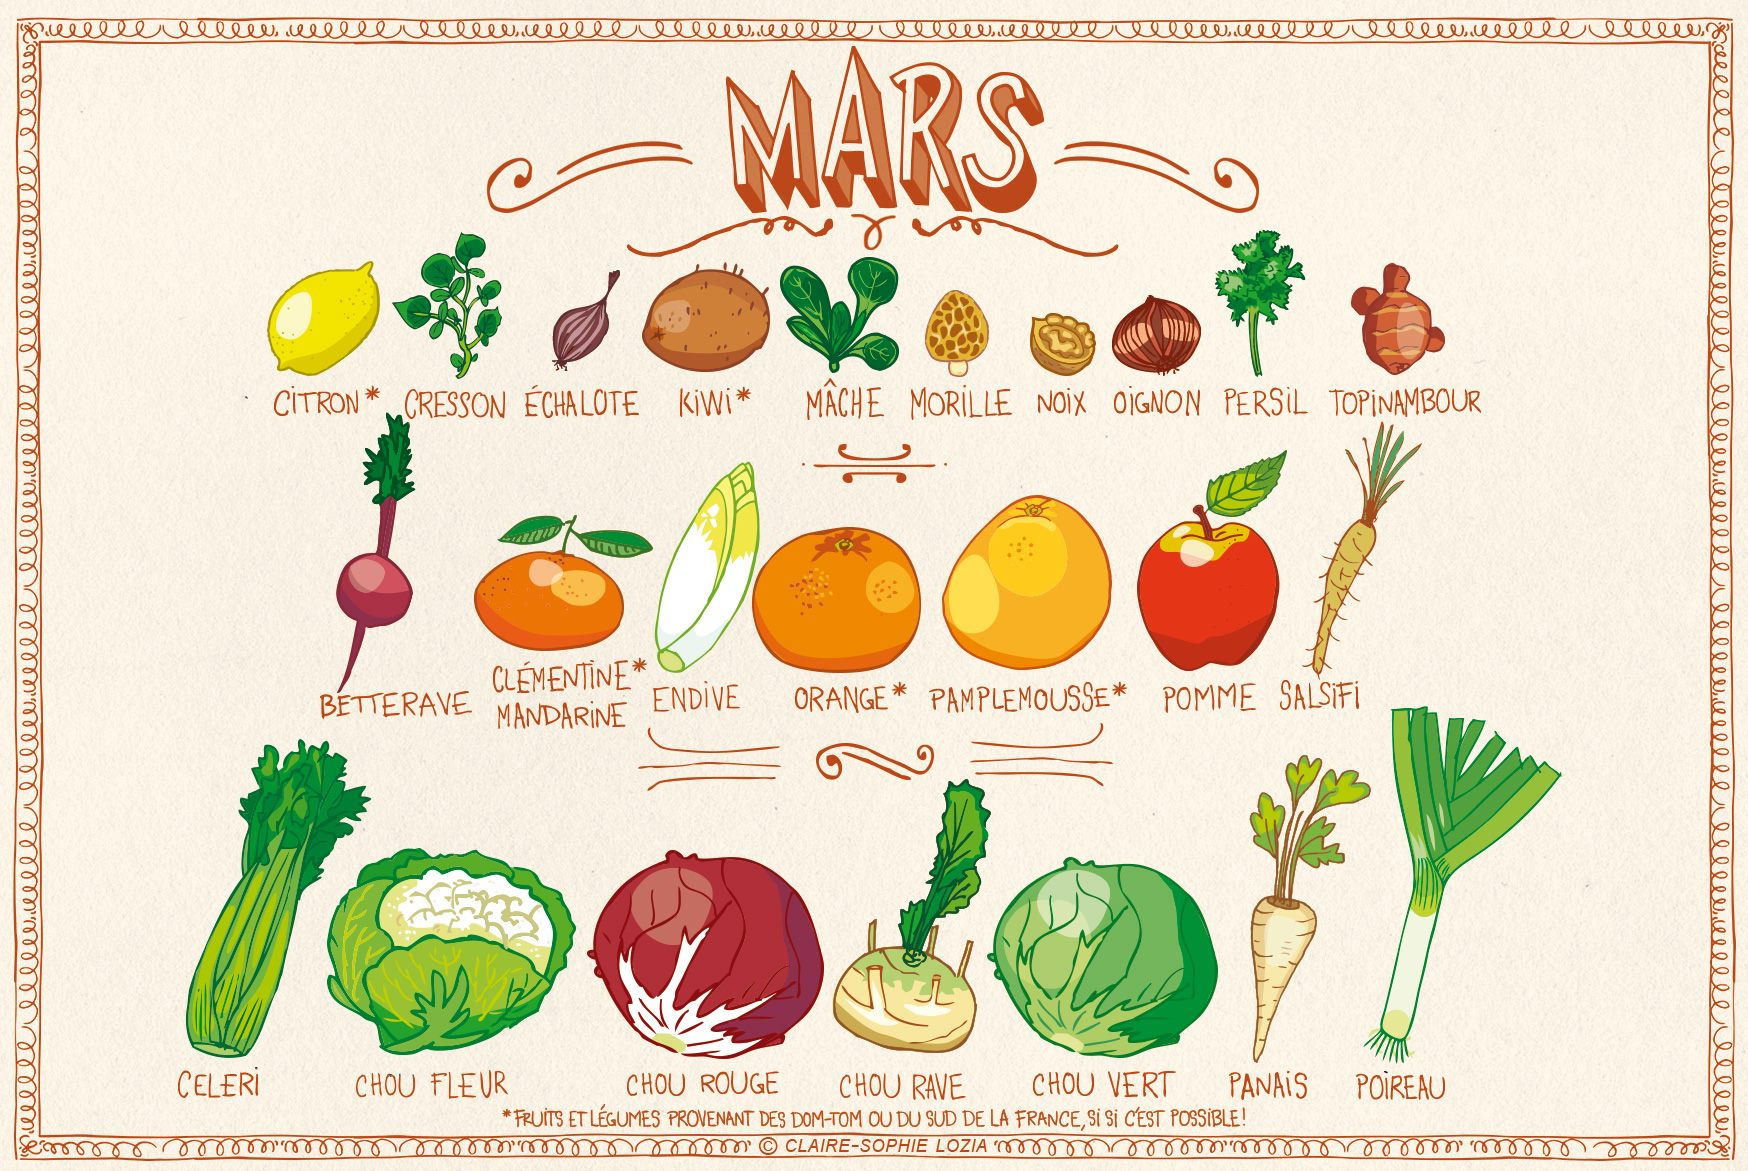 fruits legumes saison mars